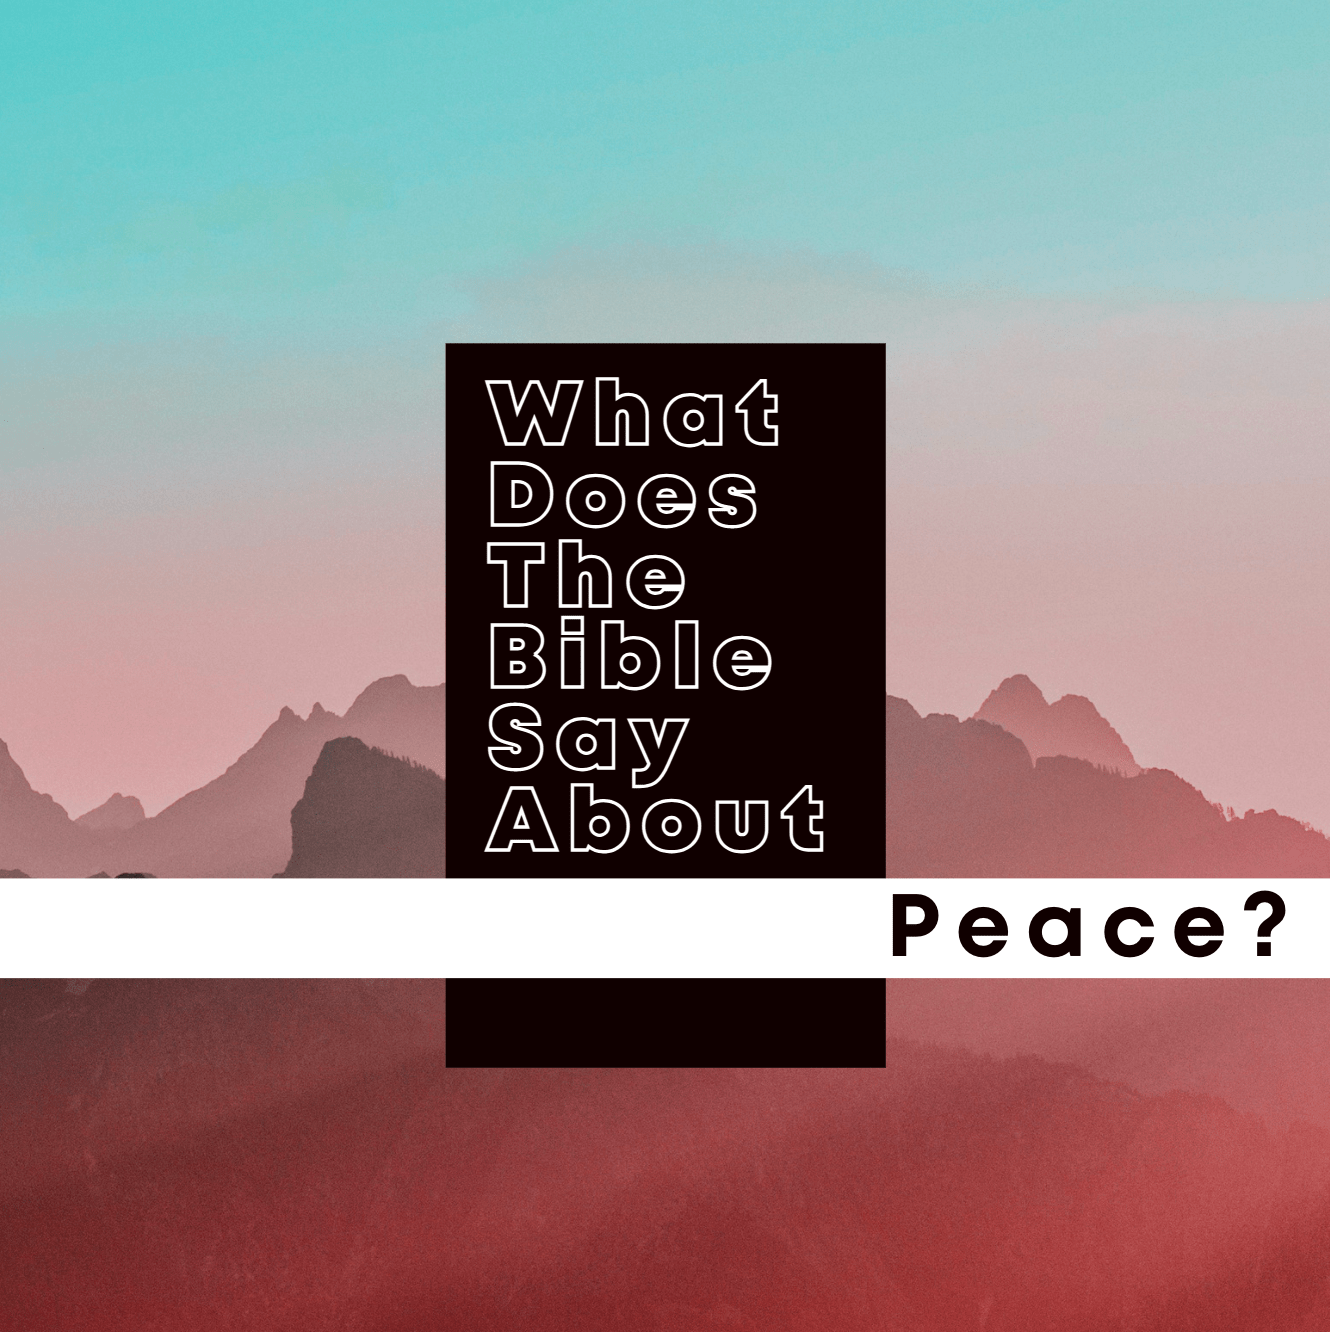 What Does The Bible Say About Peace?